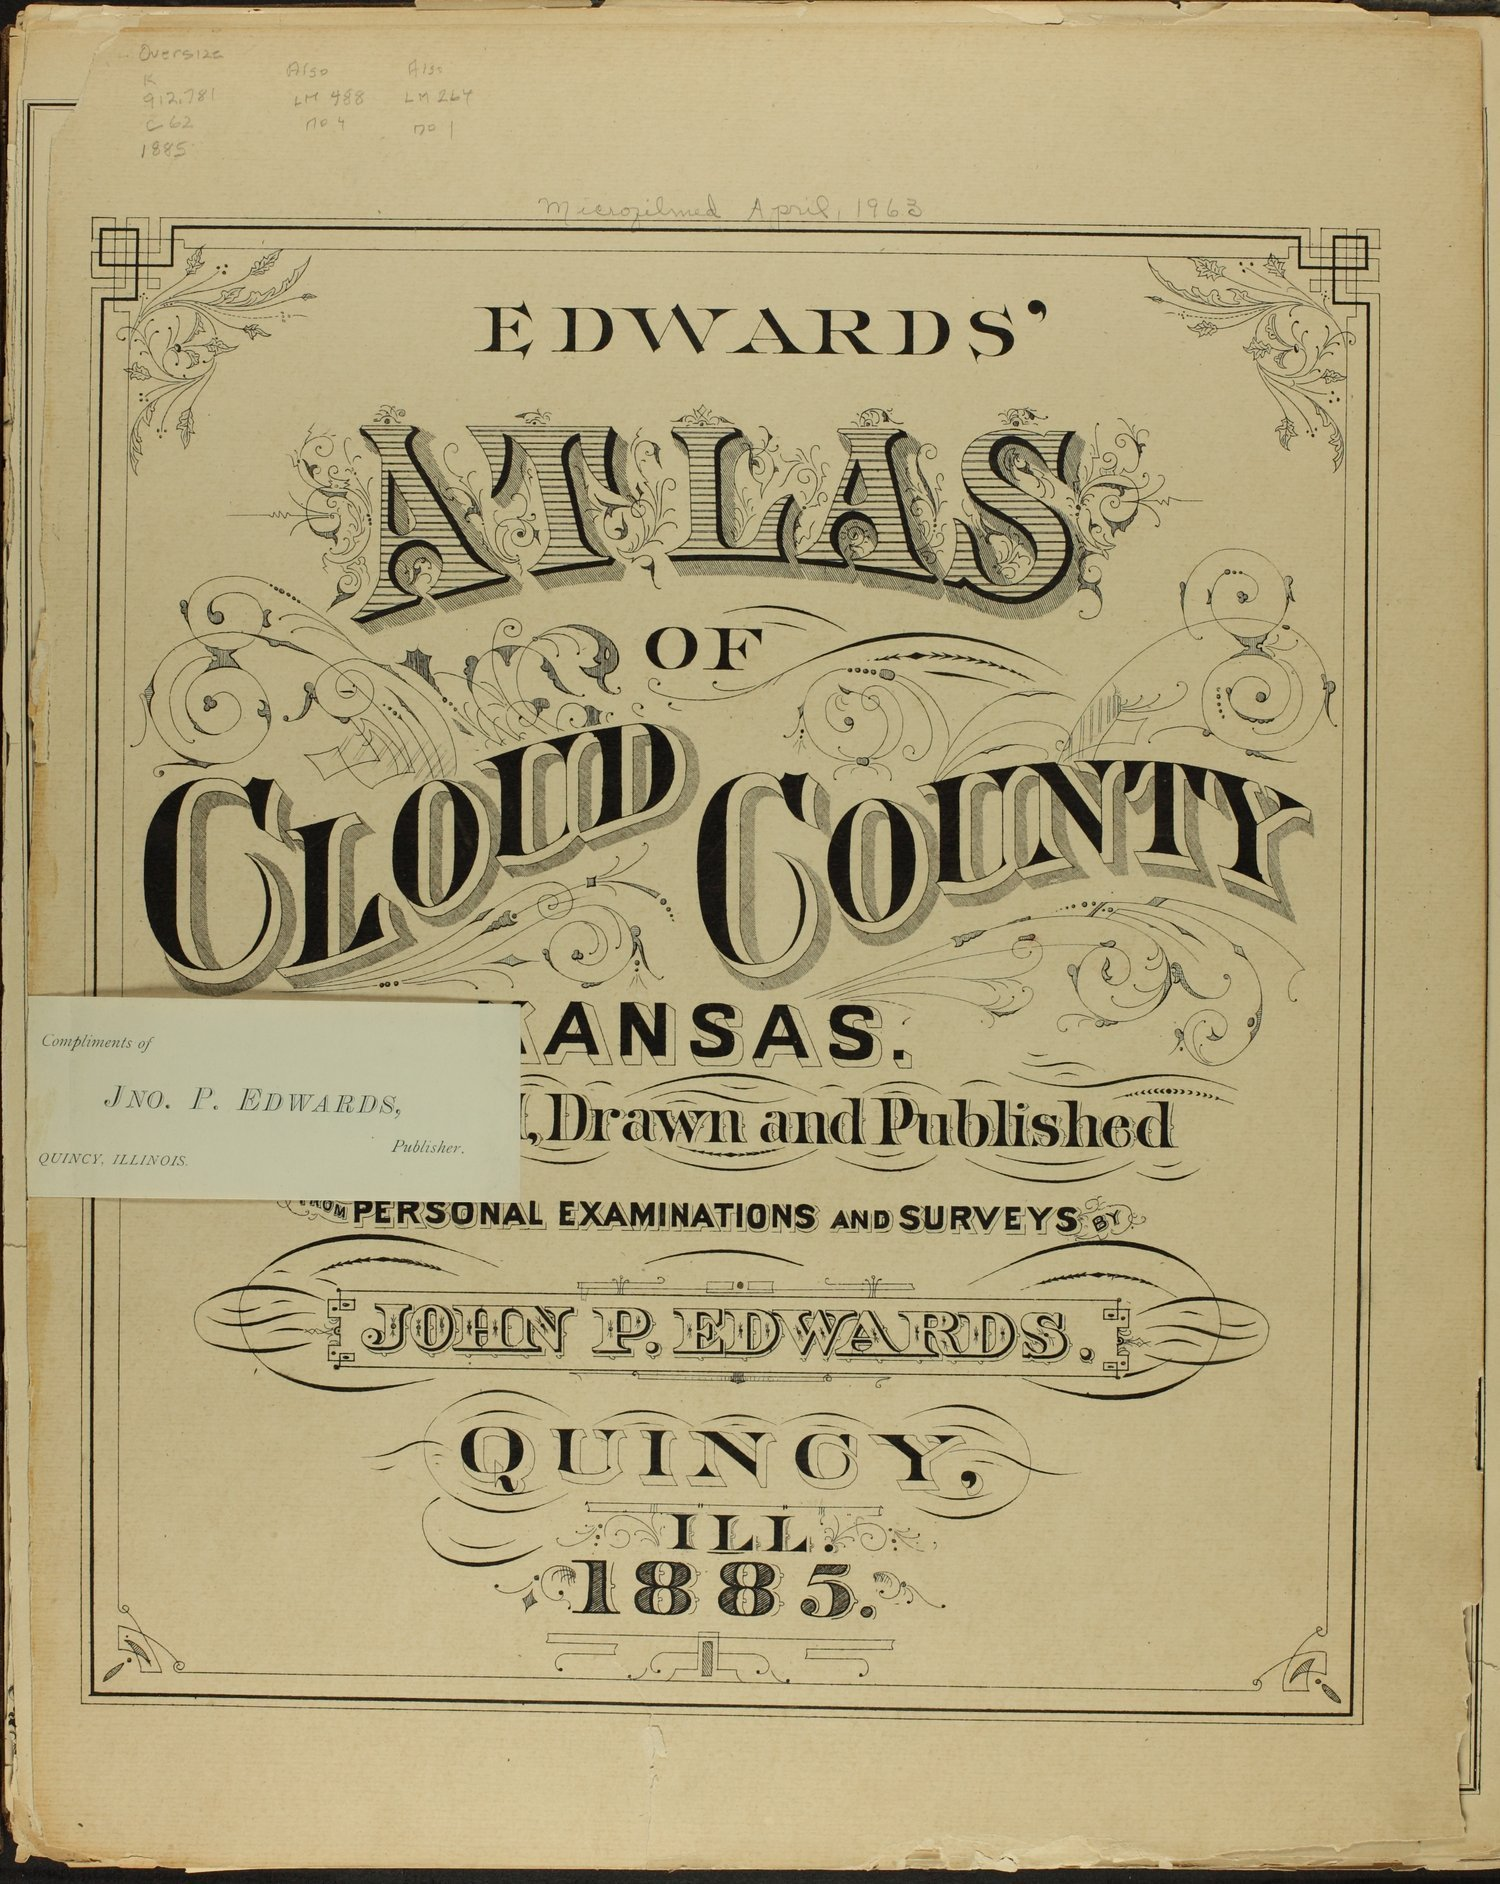 Edward's atlas of Cloud County, Kansas - Title Page